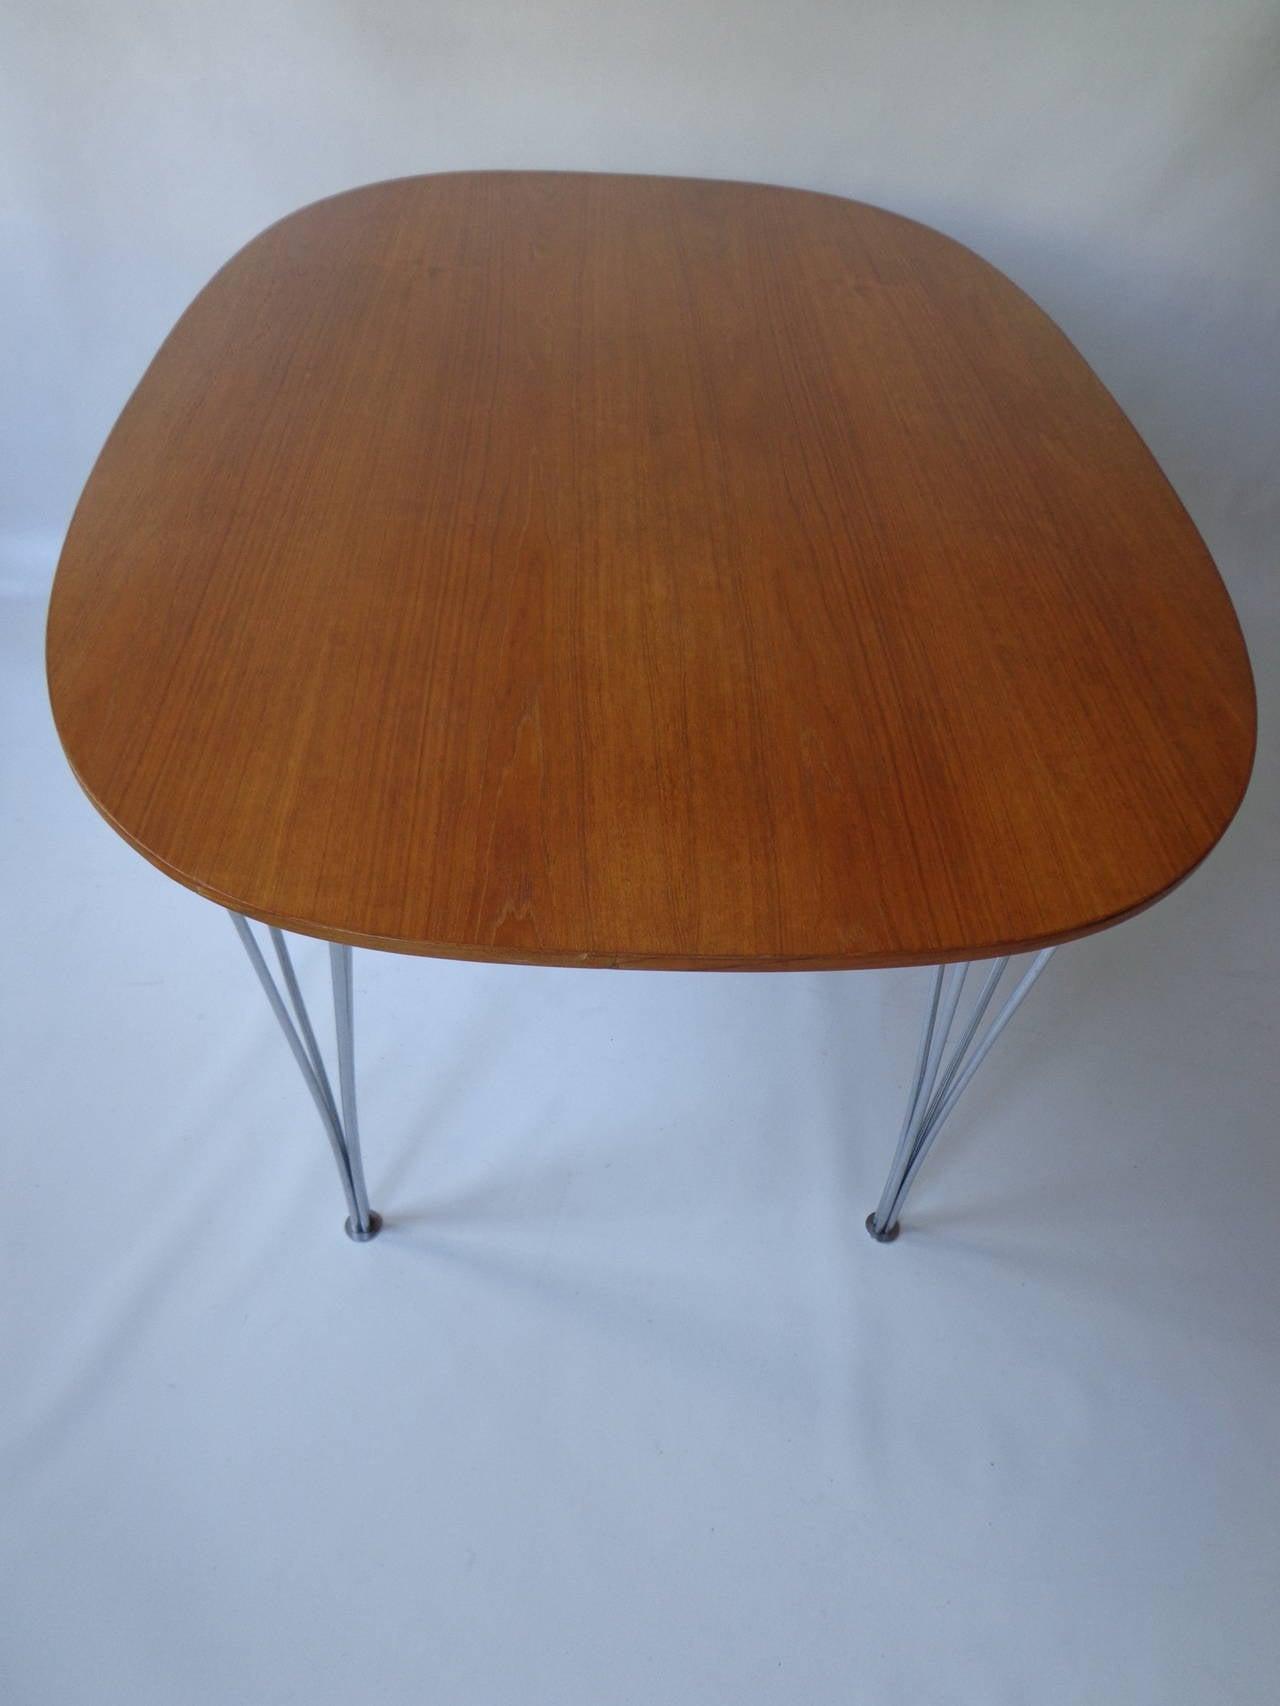 Teak Dining Table By Piet Hein And Bruno Mathsson For